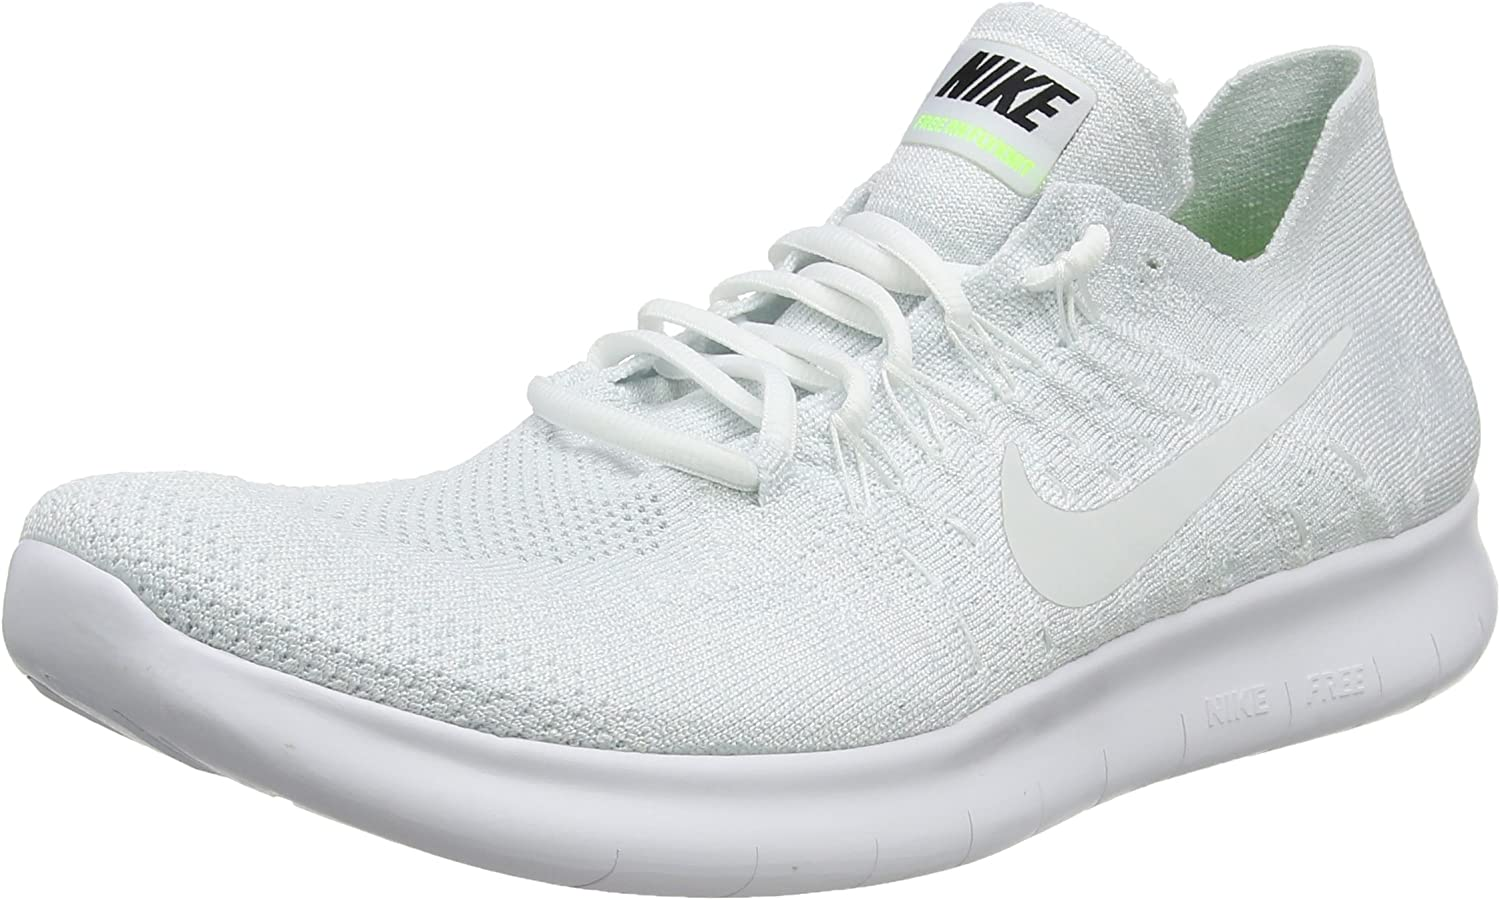 Nike Men S Free Rn Flyknit 2017 Running Shoe Basketball